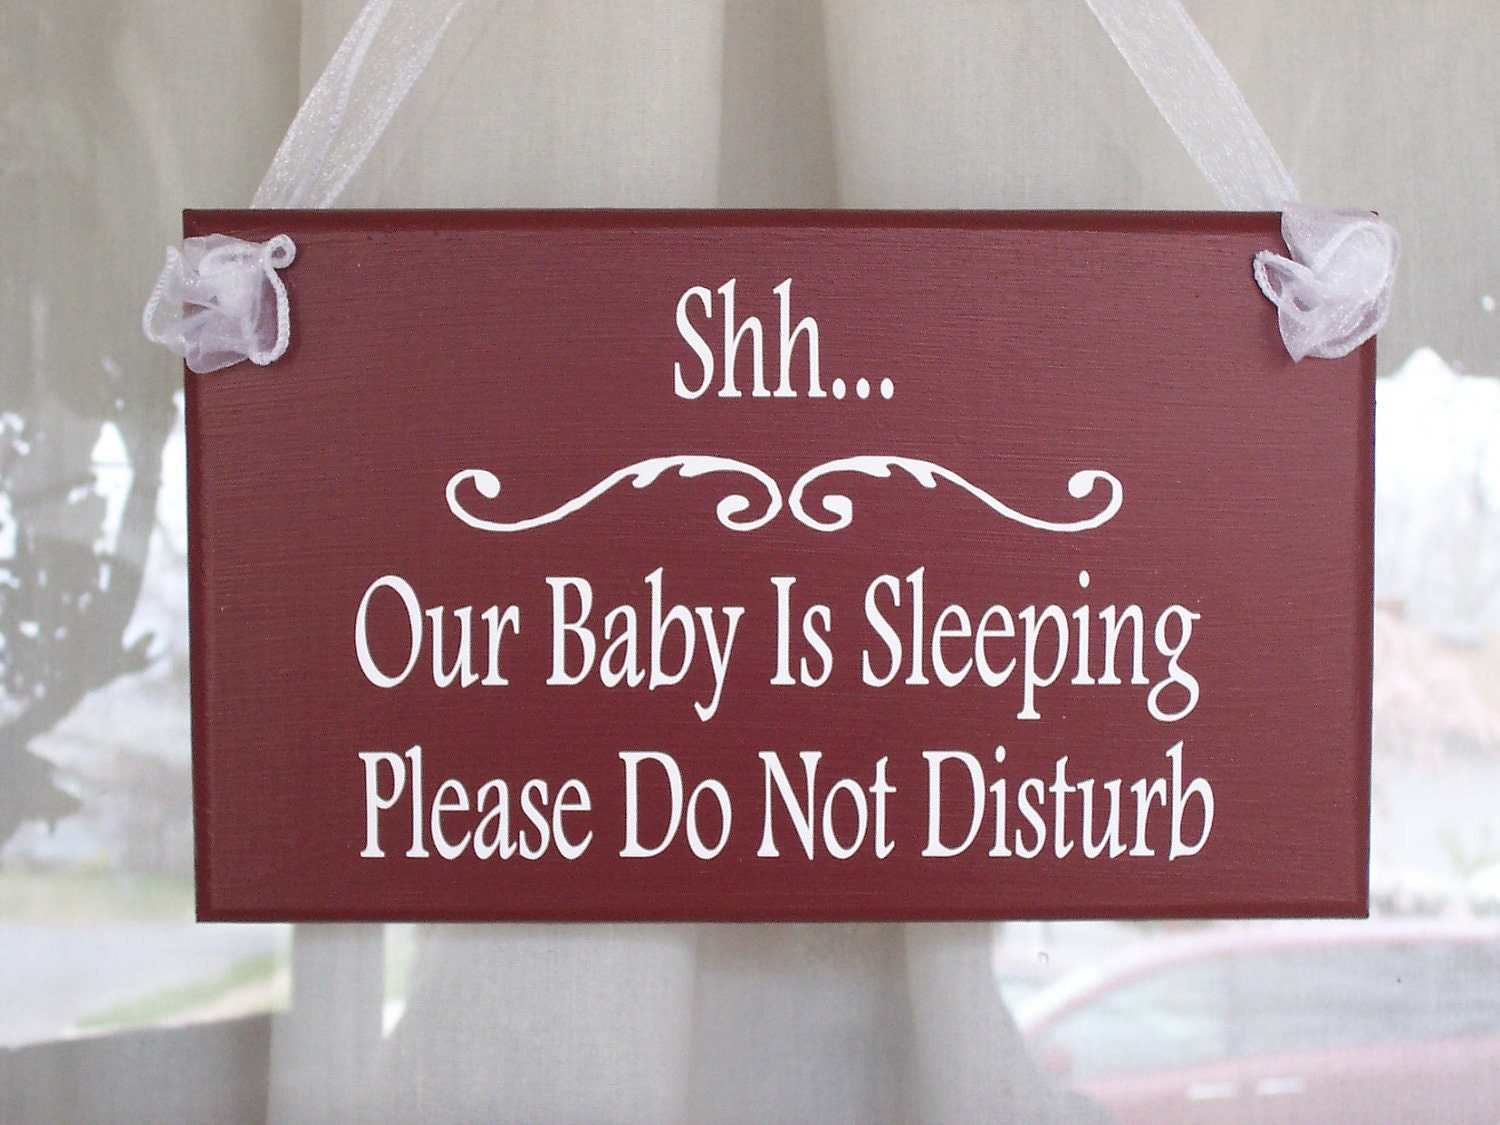 Shh Baby Sleeping Do Not Disturb Wood Vinyl Signs Country Red